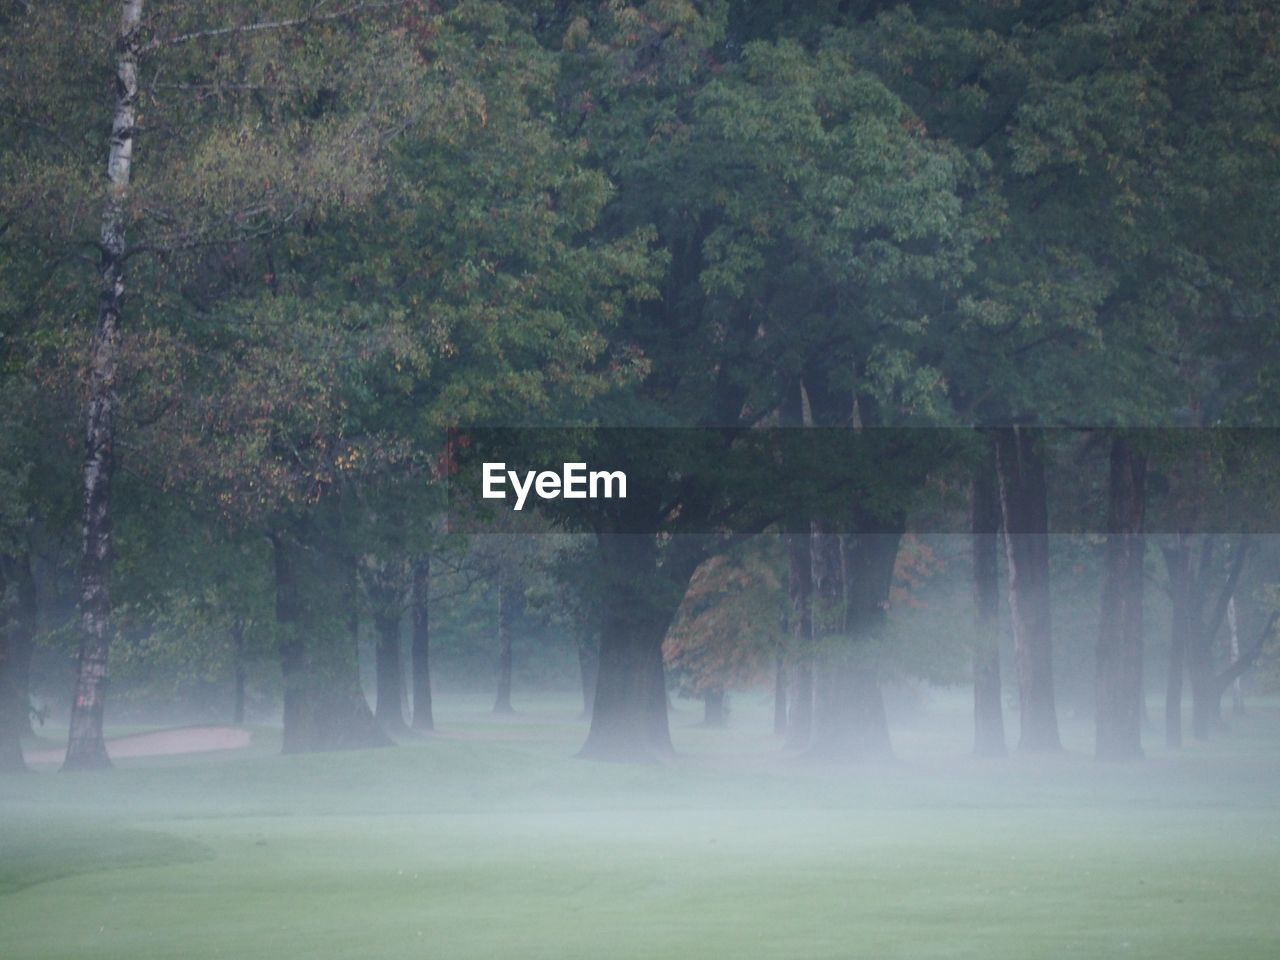 VIEW OF TREES ON LANDSCAPE IN FOGGY WEATHER